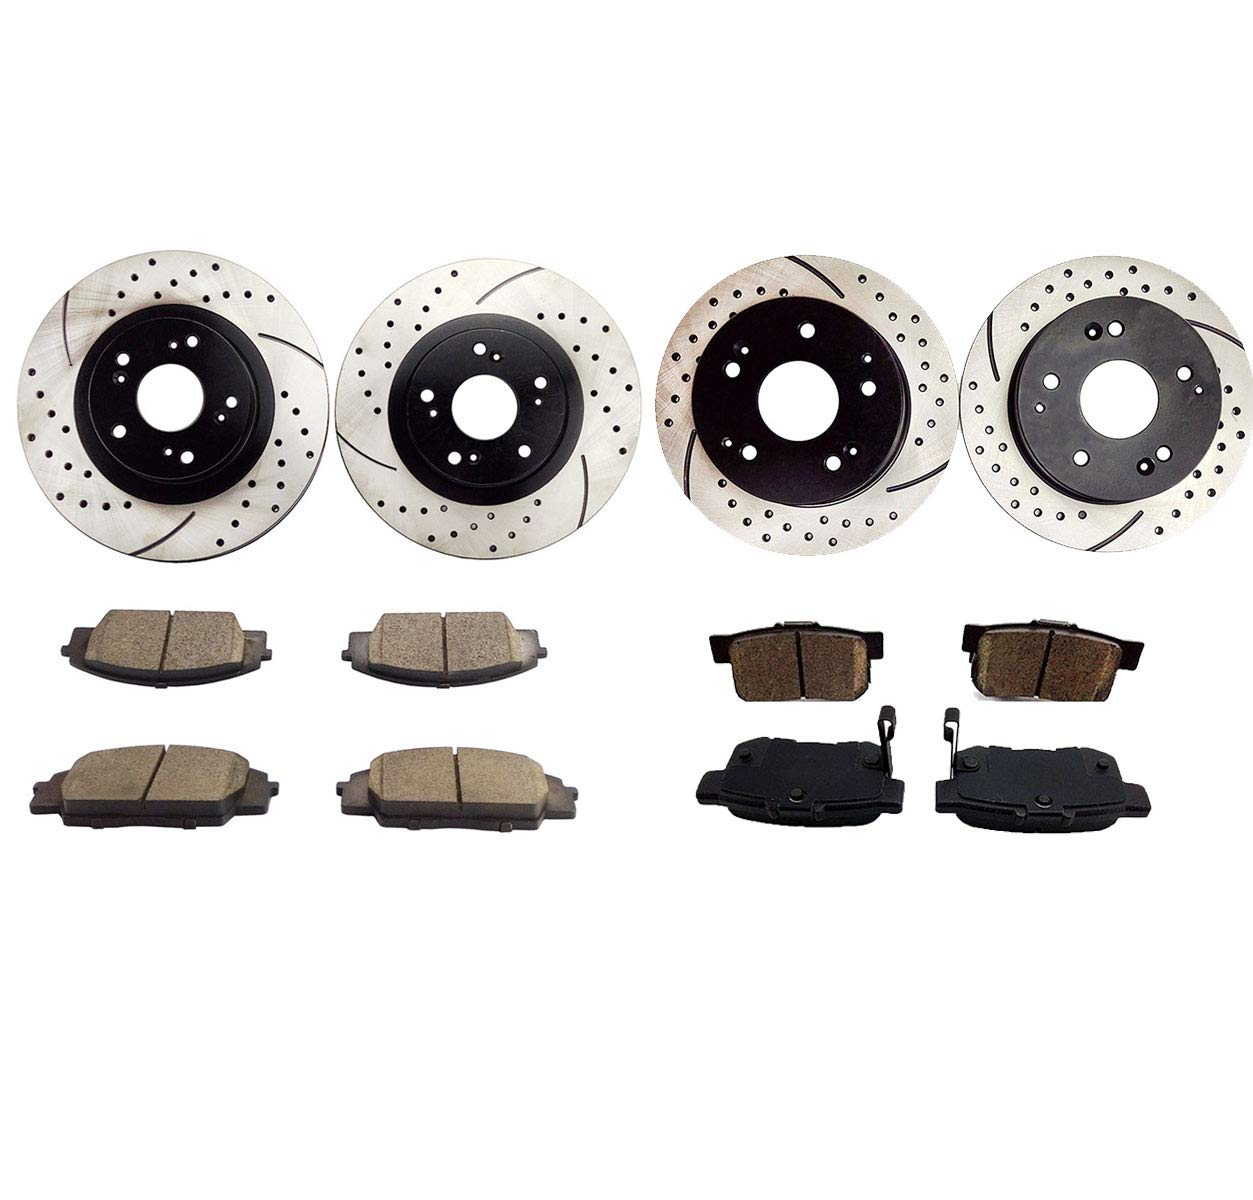 CHEAP Atmansta QPD20003 Front&Rear Brake Kit With Drilled